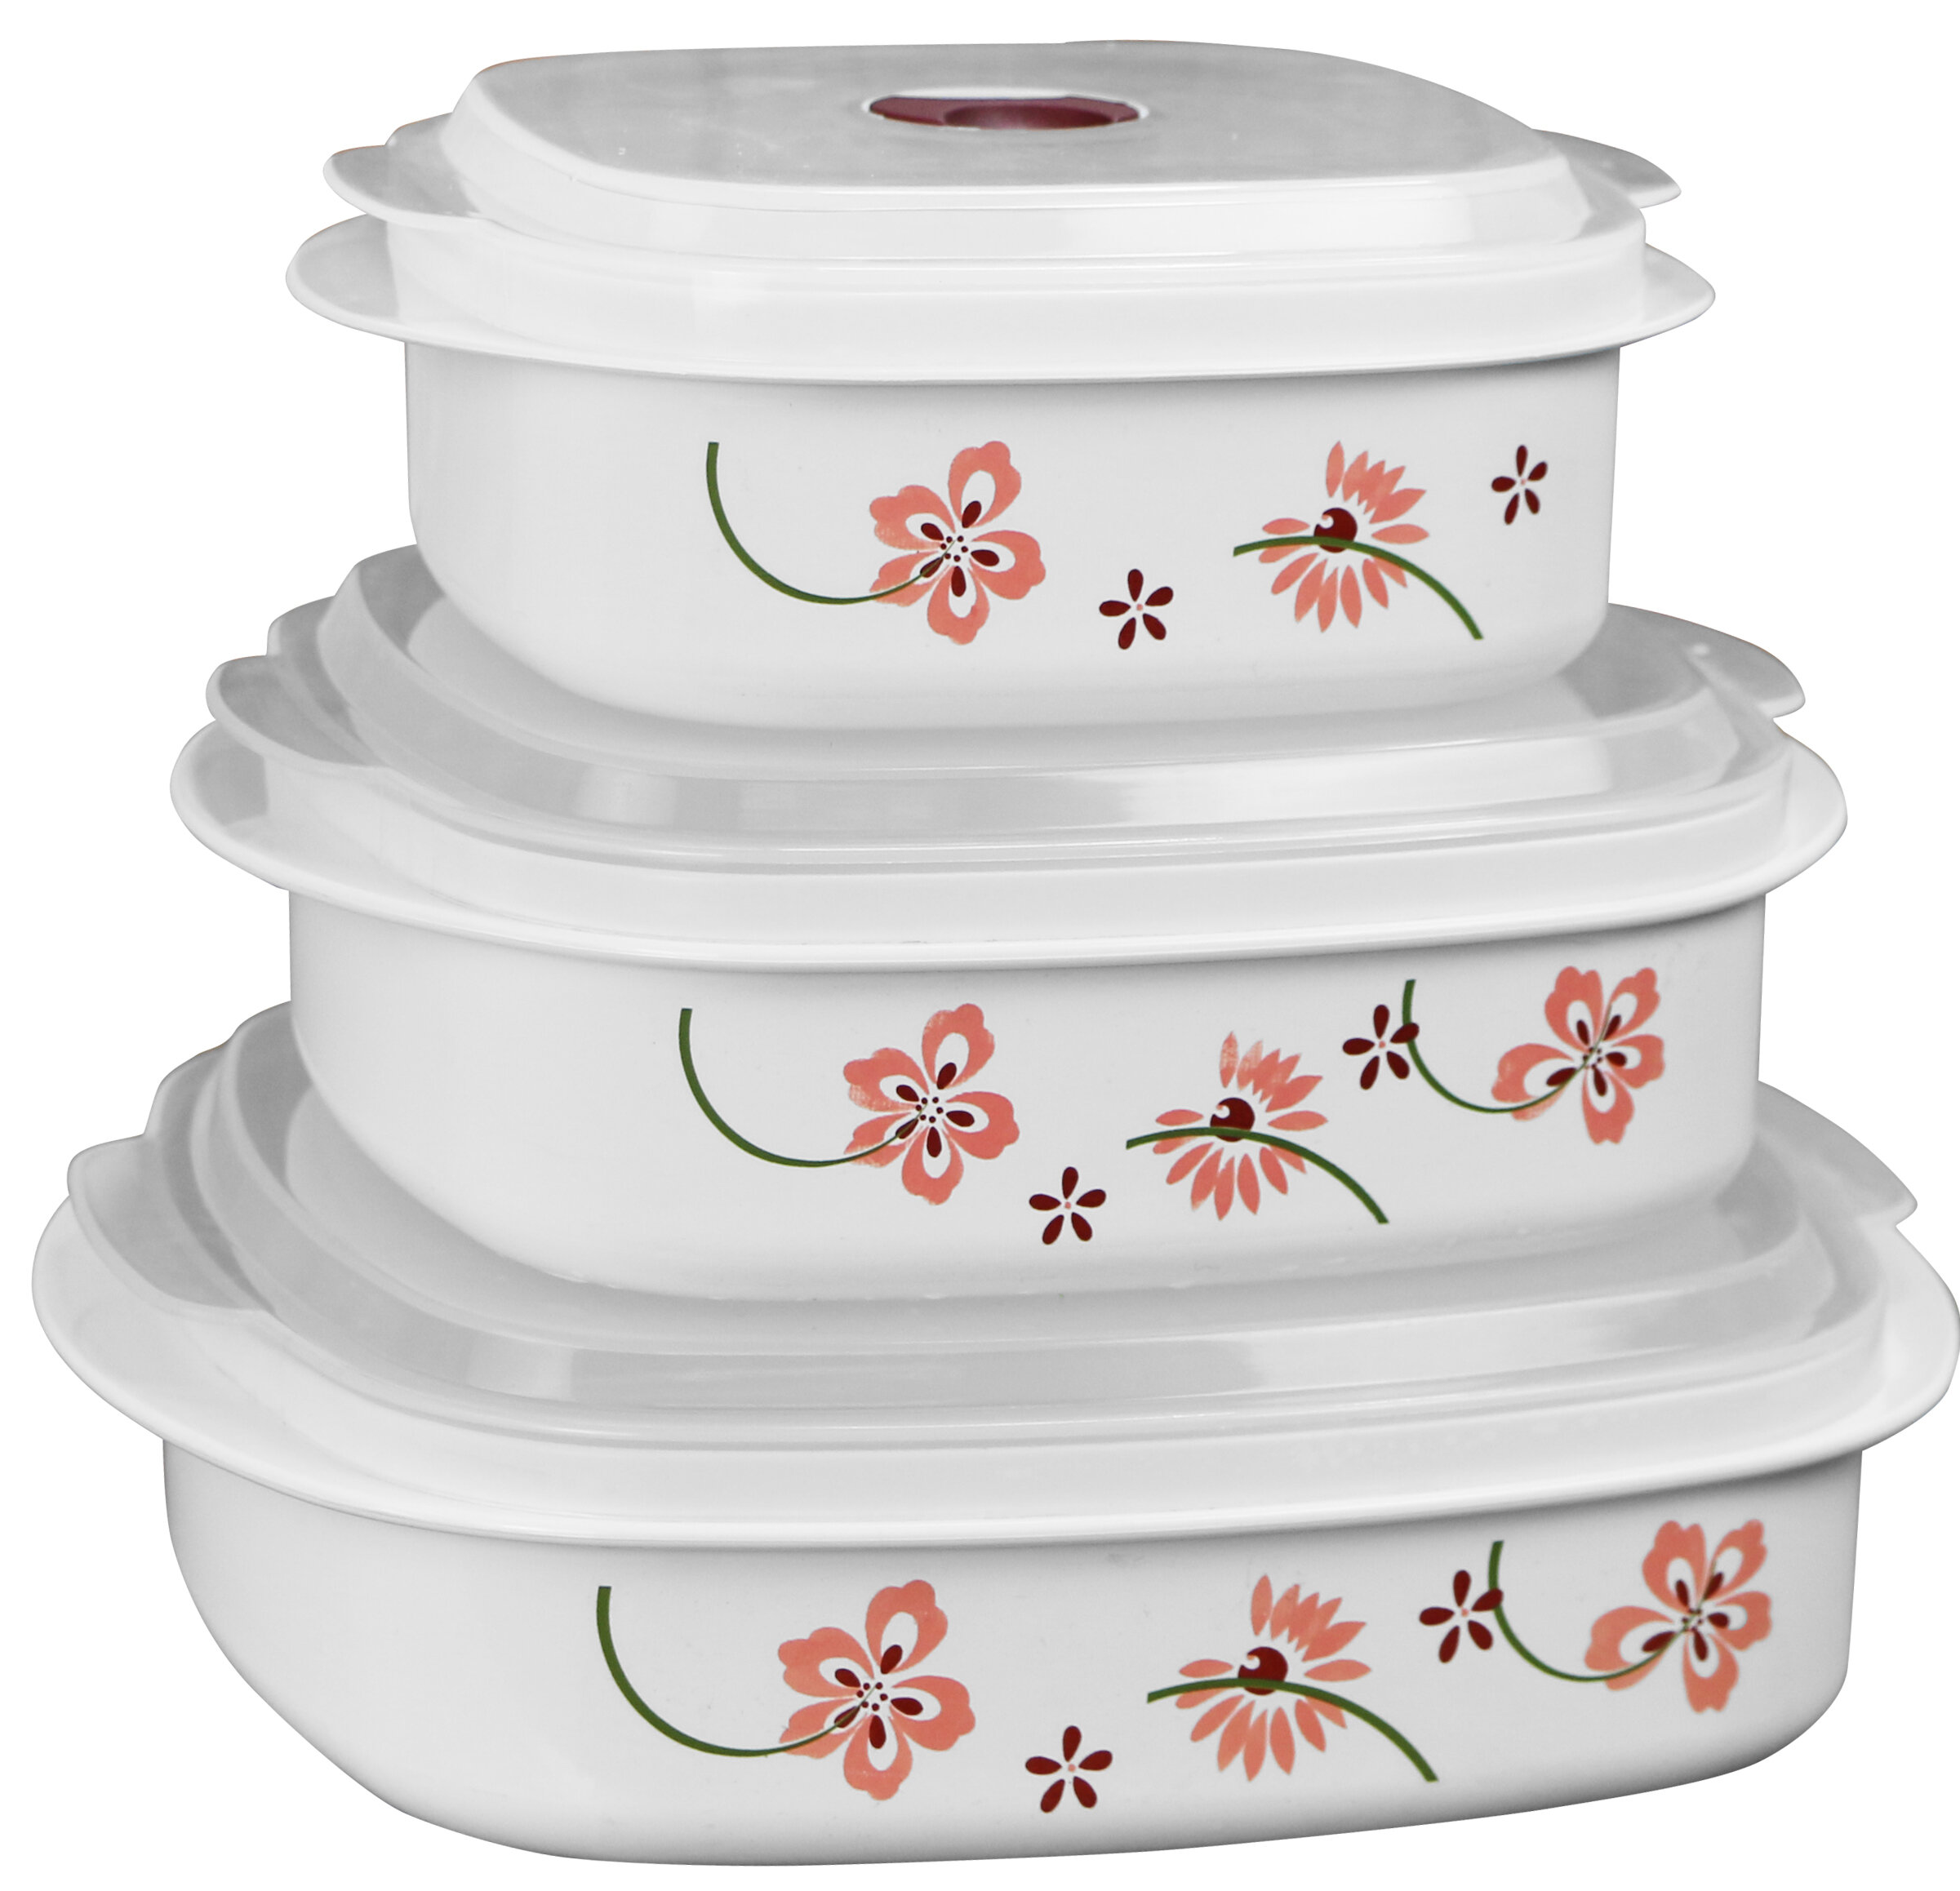 Corelle Microwave Cookware 3 Container Food Storage Set u0026 Reviews | Wayfair  sc 1 st  Wayfair & Corelle Microwave Cookware 3 Container Food Storage Set u0026 Reviews ...